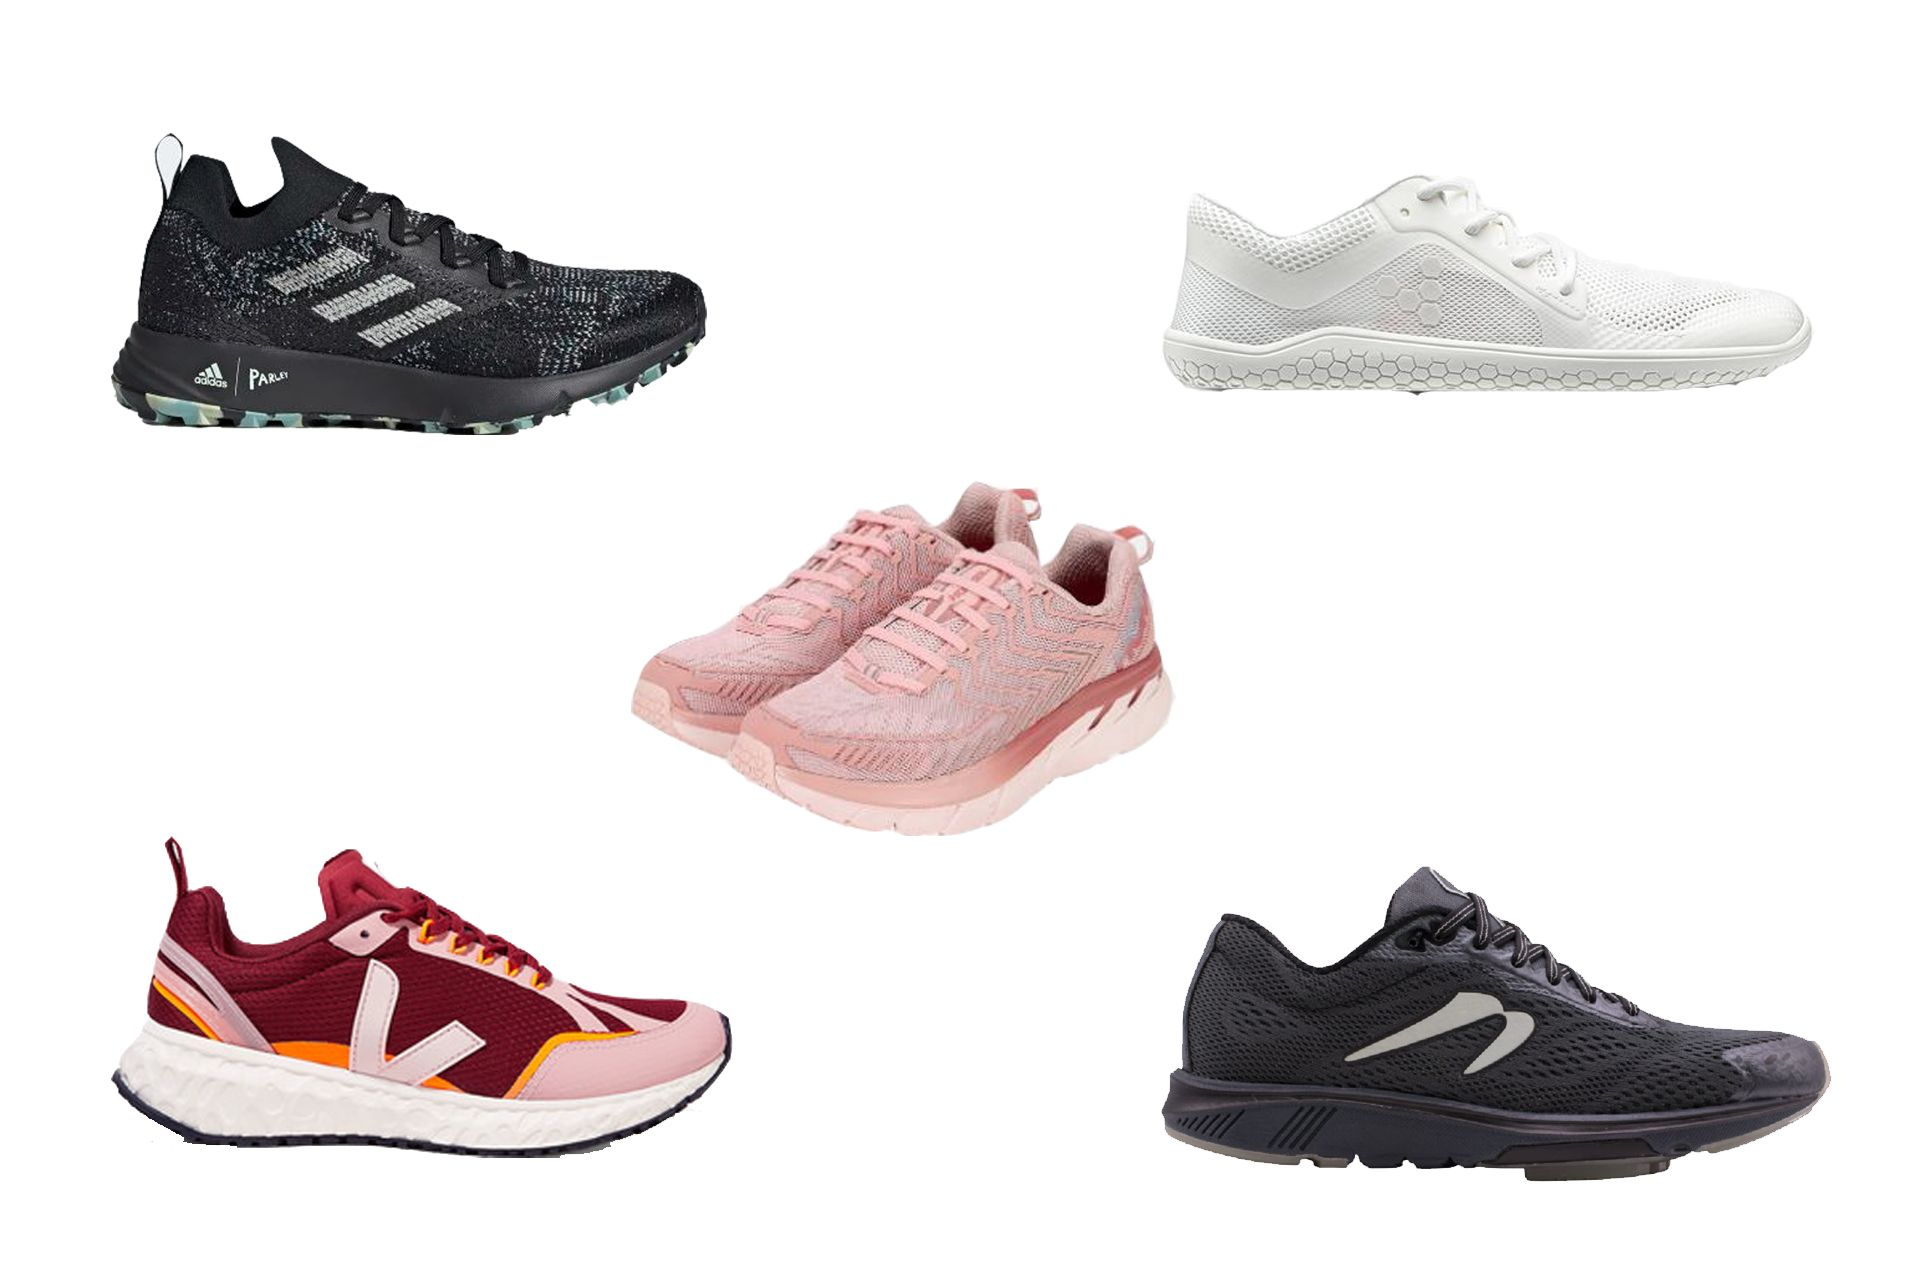 Ethical Running Shoes To Get Your Workout Off On The Right Foot This Year